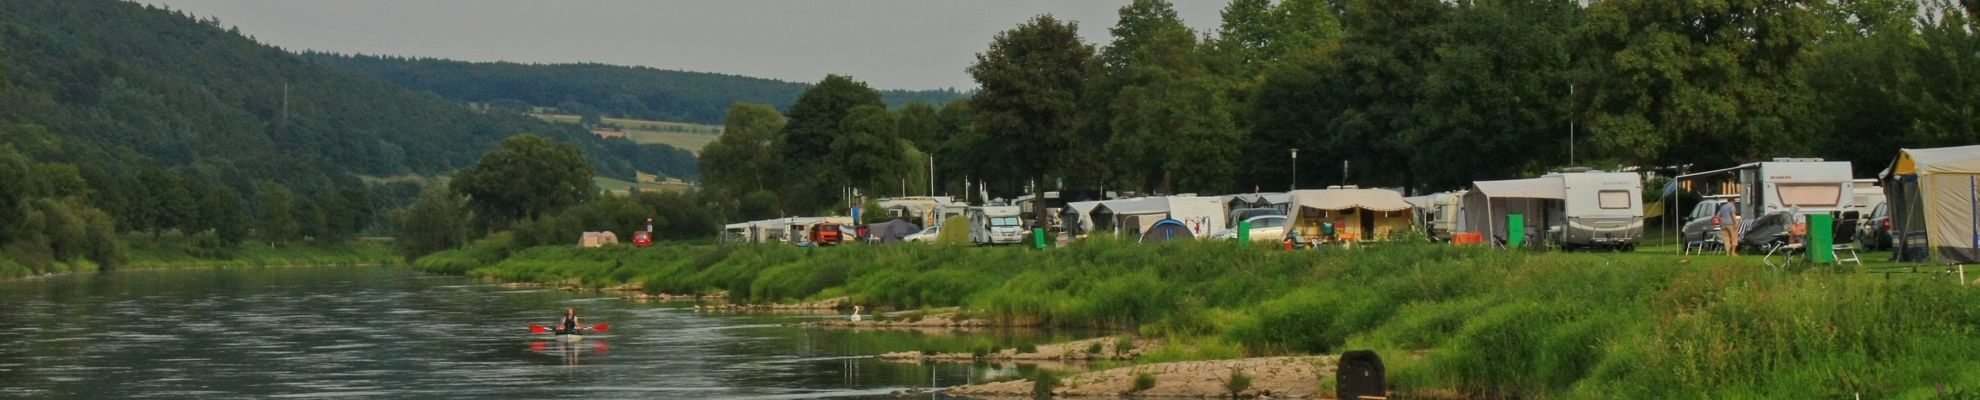 Welcome to the campsite Gieselwerder